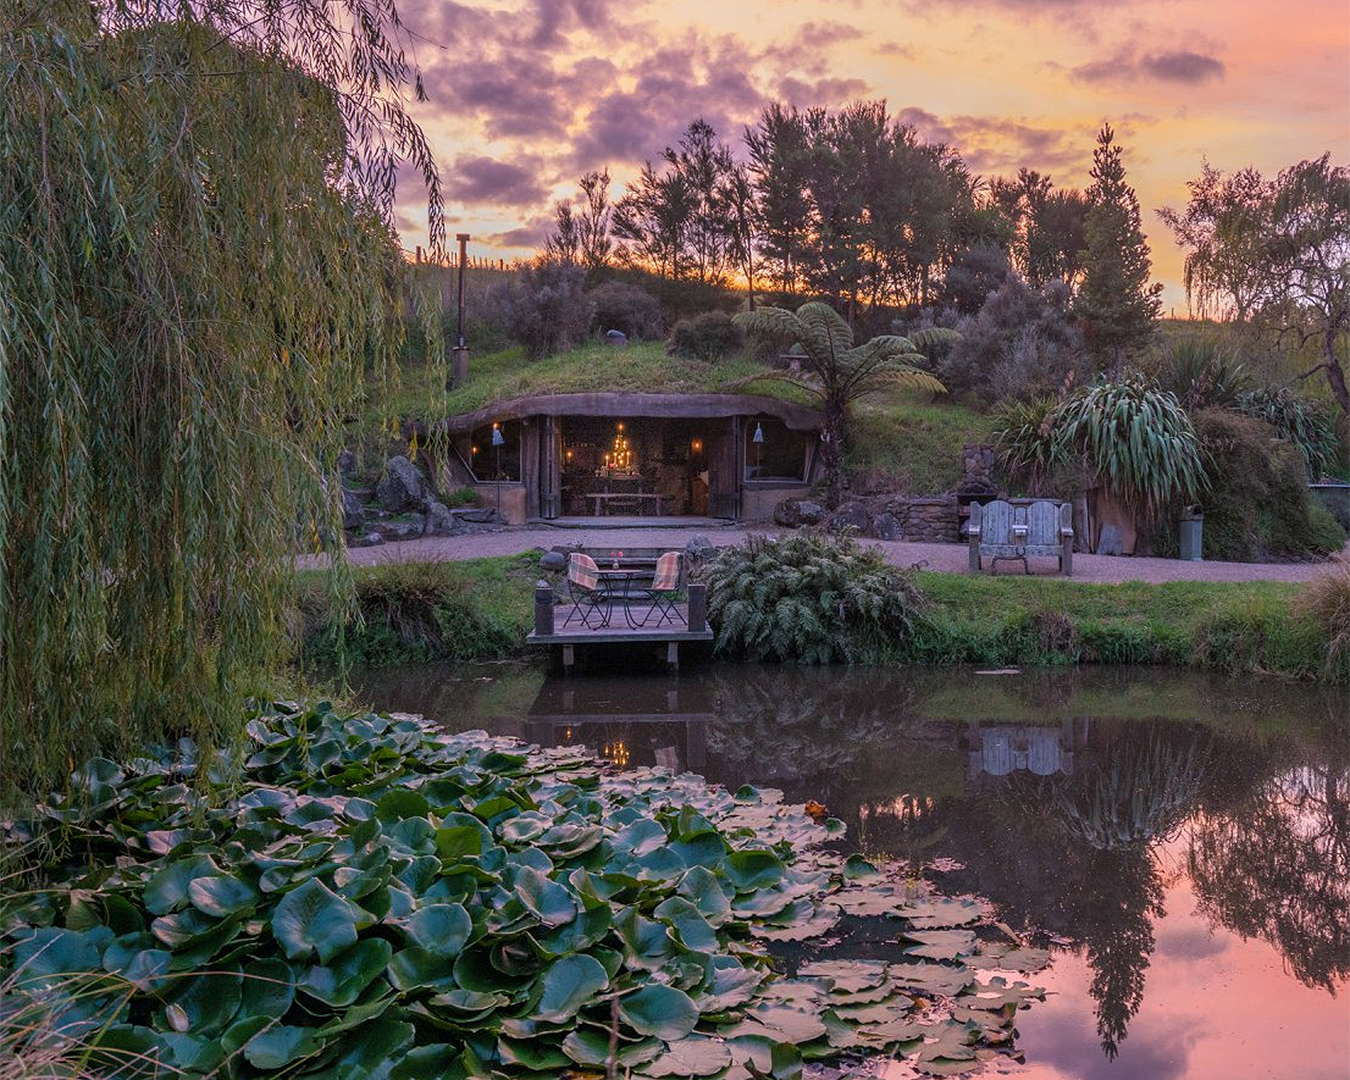 Underhill Valley is seen in front of a beautiful pond at sunset.